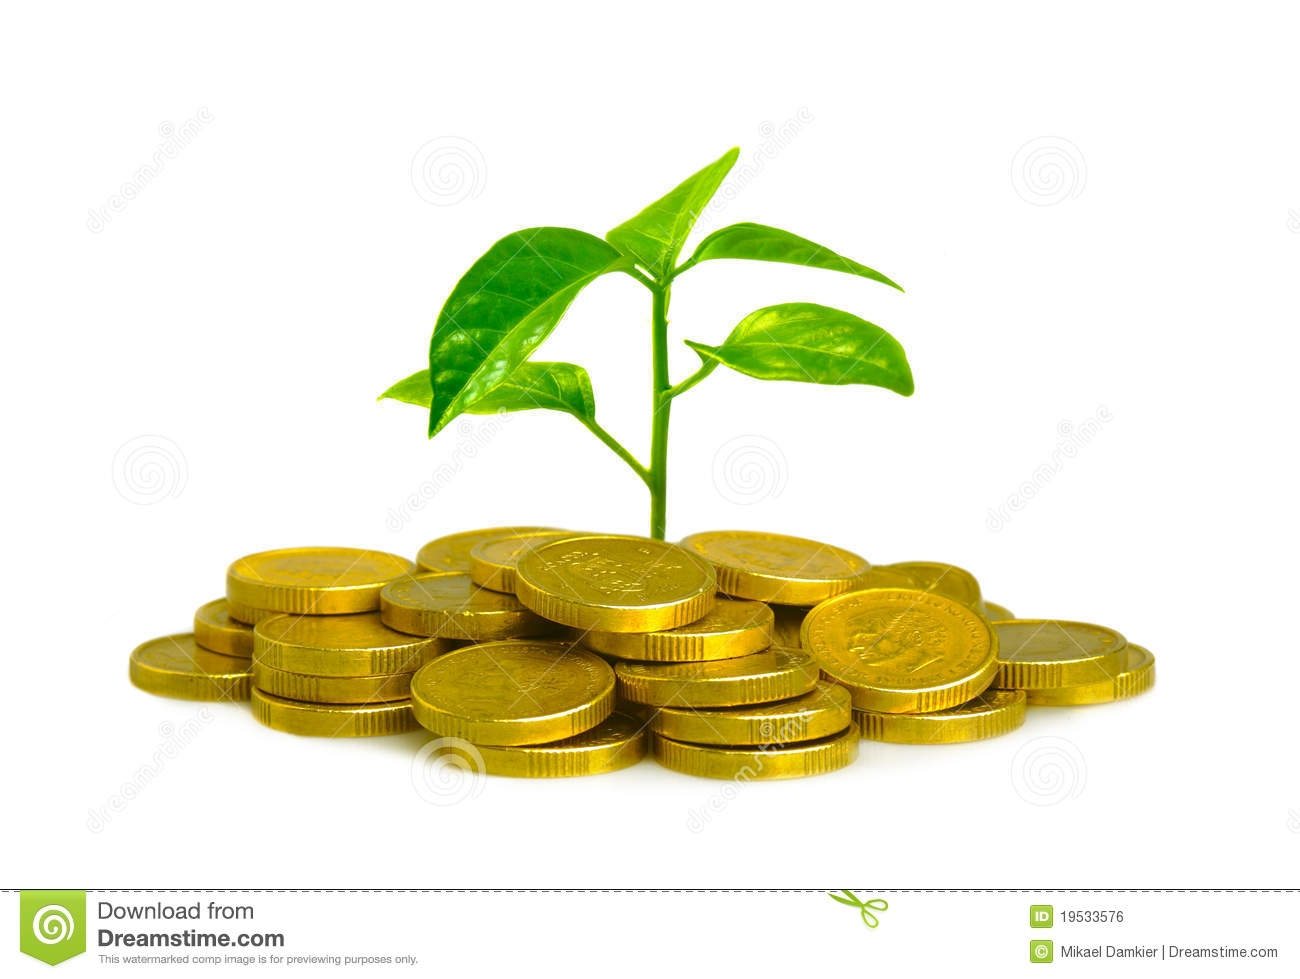 Money plant images clipart vector free download Money Plant Images Clipart - clipartsgram.com vector free download